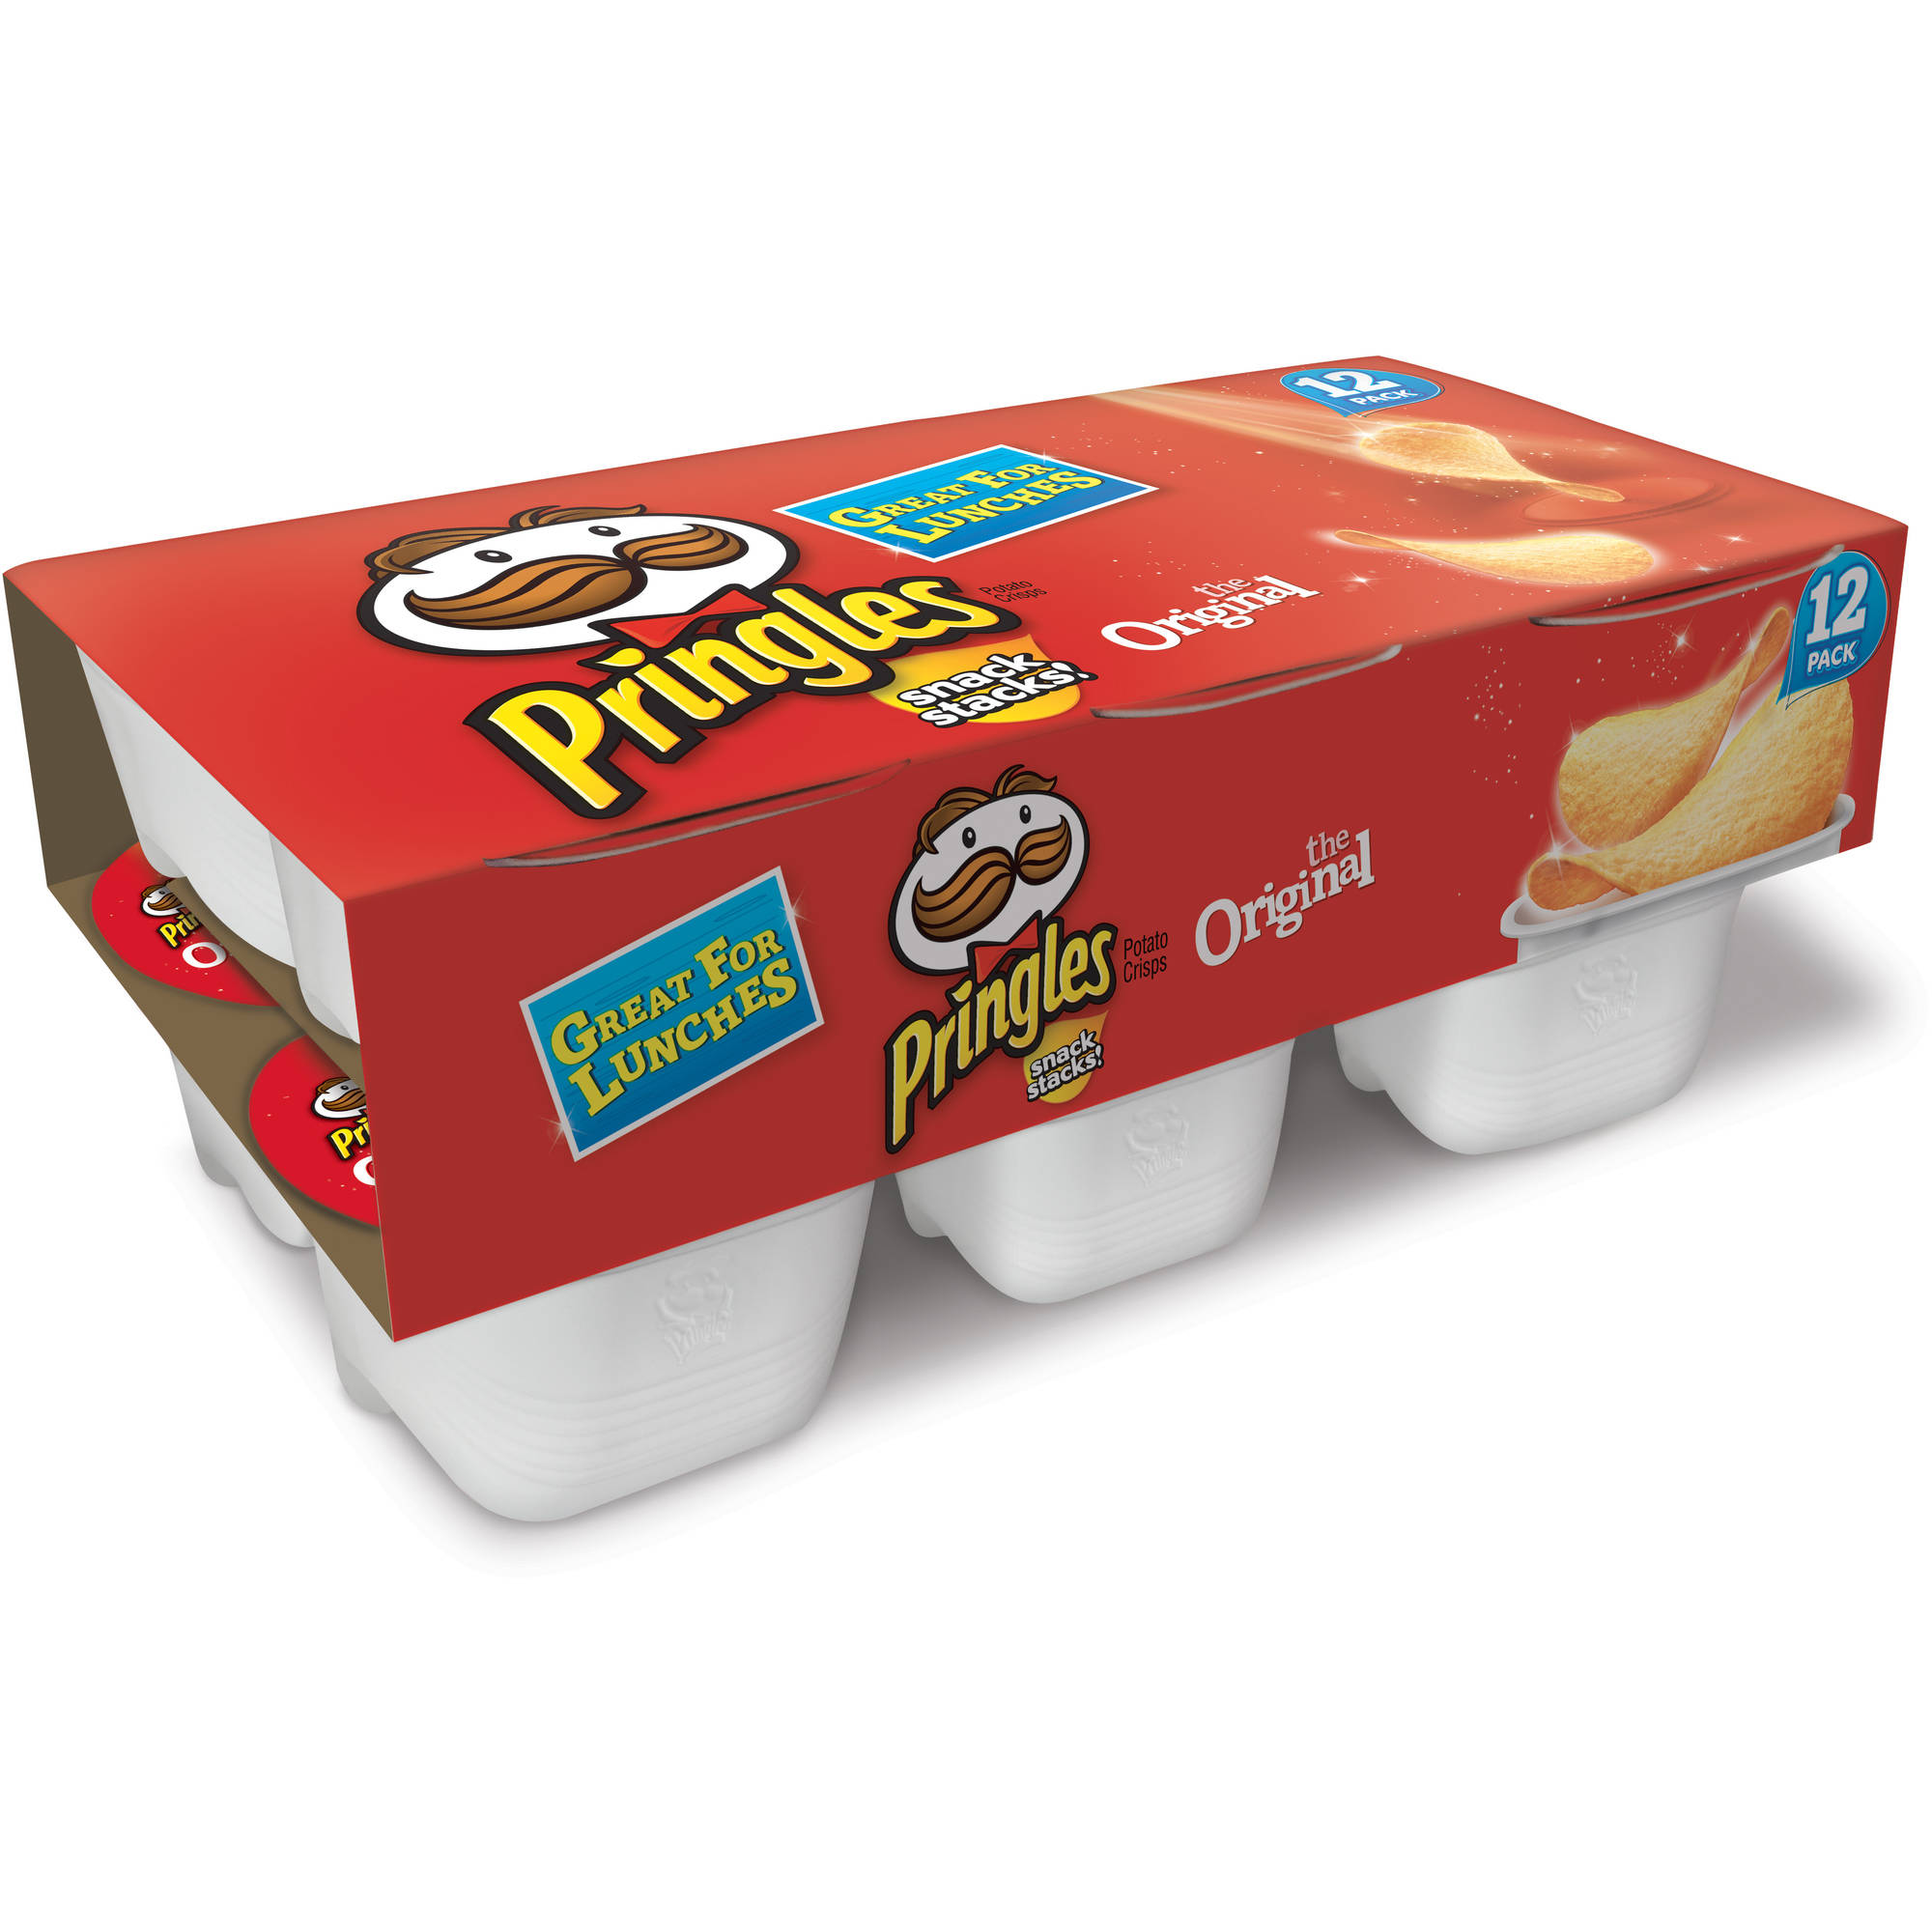 Pringles Original Potato Crisps Chips, 0.67 oz, 12 count